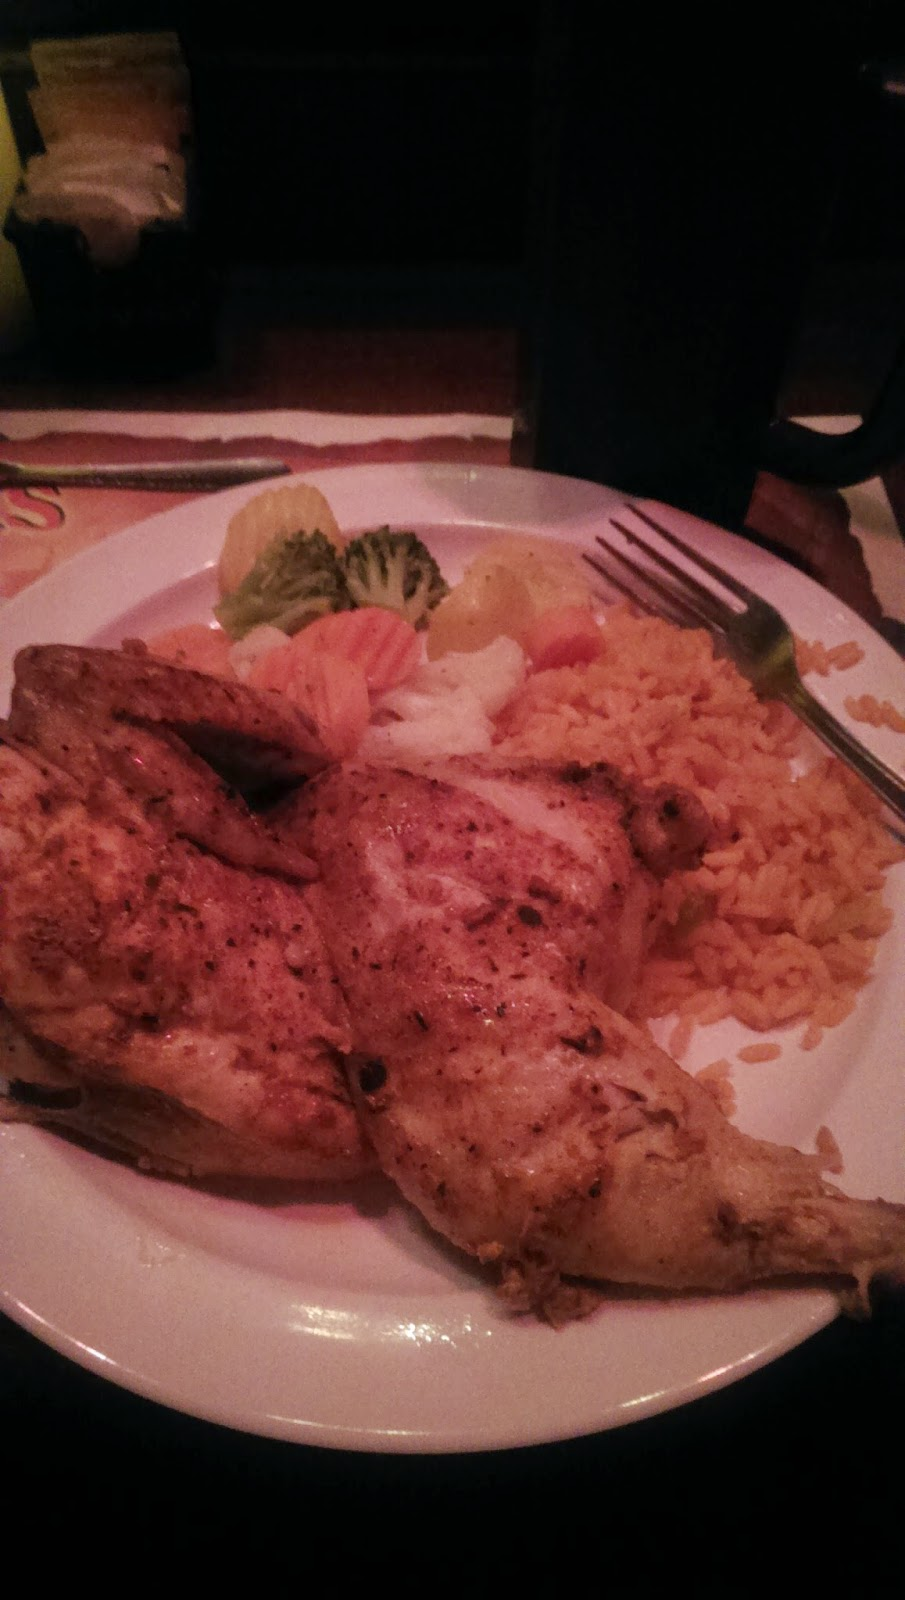 Family%2BDinner Pirates Dinner Adventure Review - Things To Do With Kids Southern California